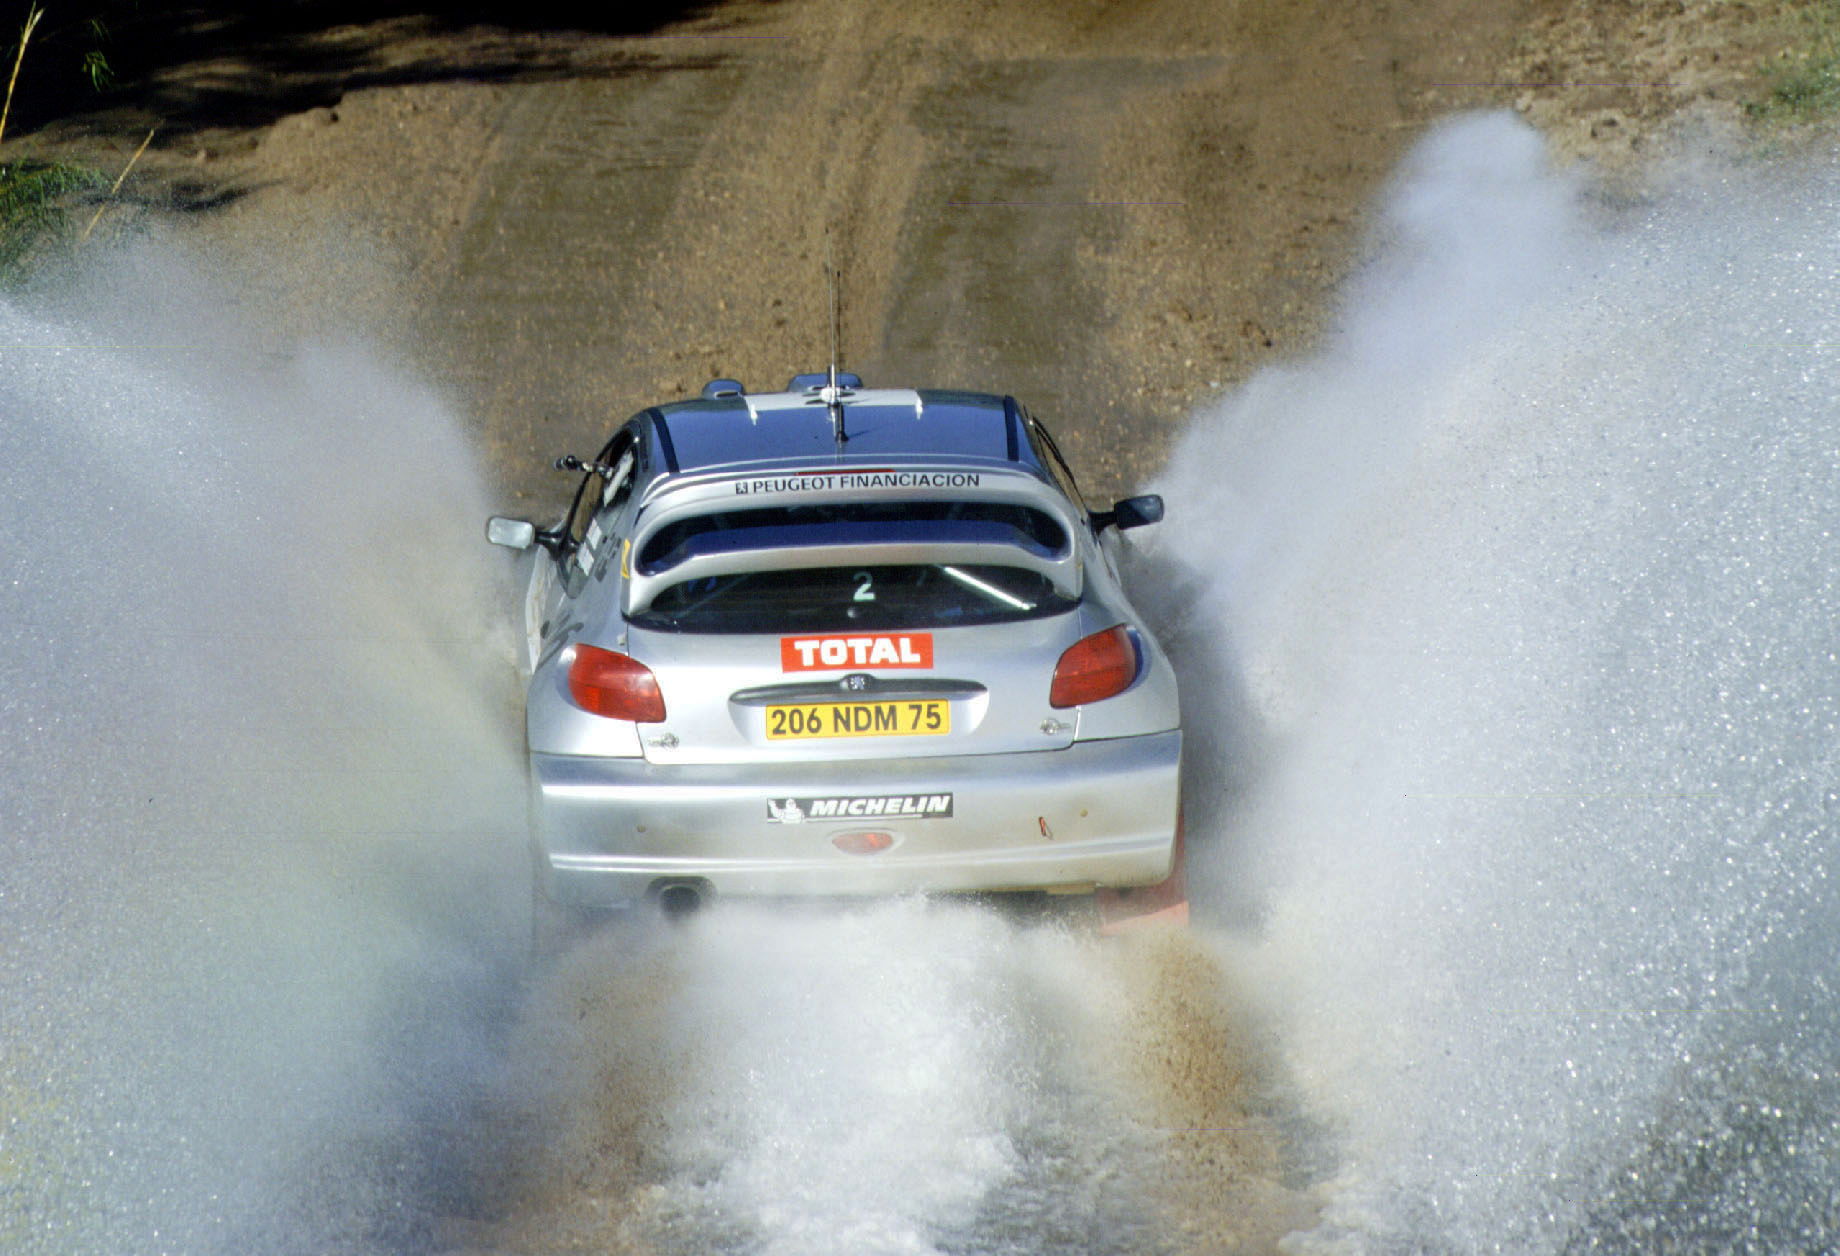 4-6 MAY 2001:  Didier Auriol with PEUGEOT 206 wrc during the World Rally Championships in Argentina.  © Reporter / Grazia Neri